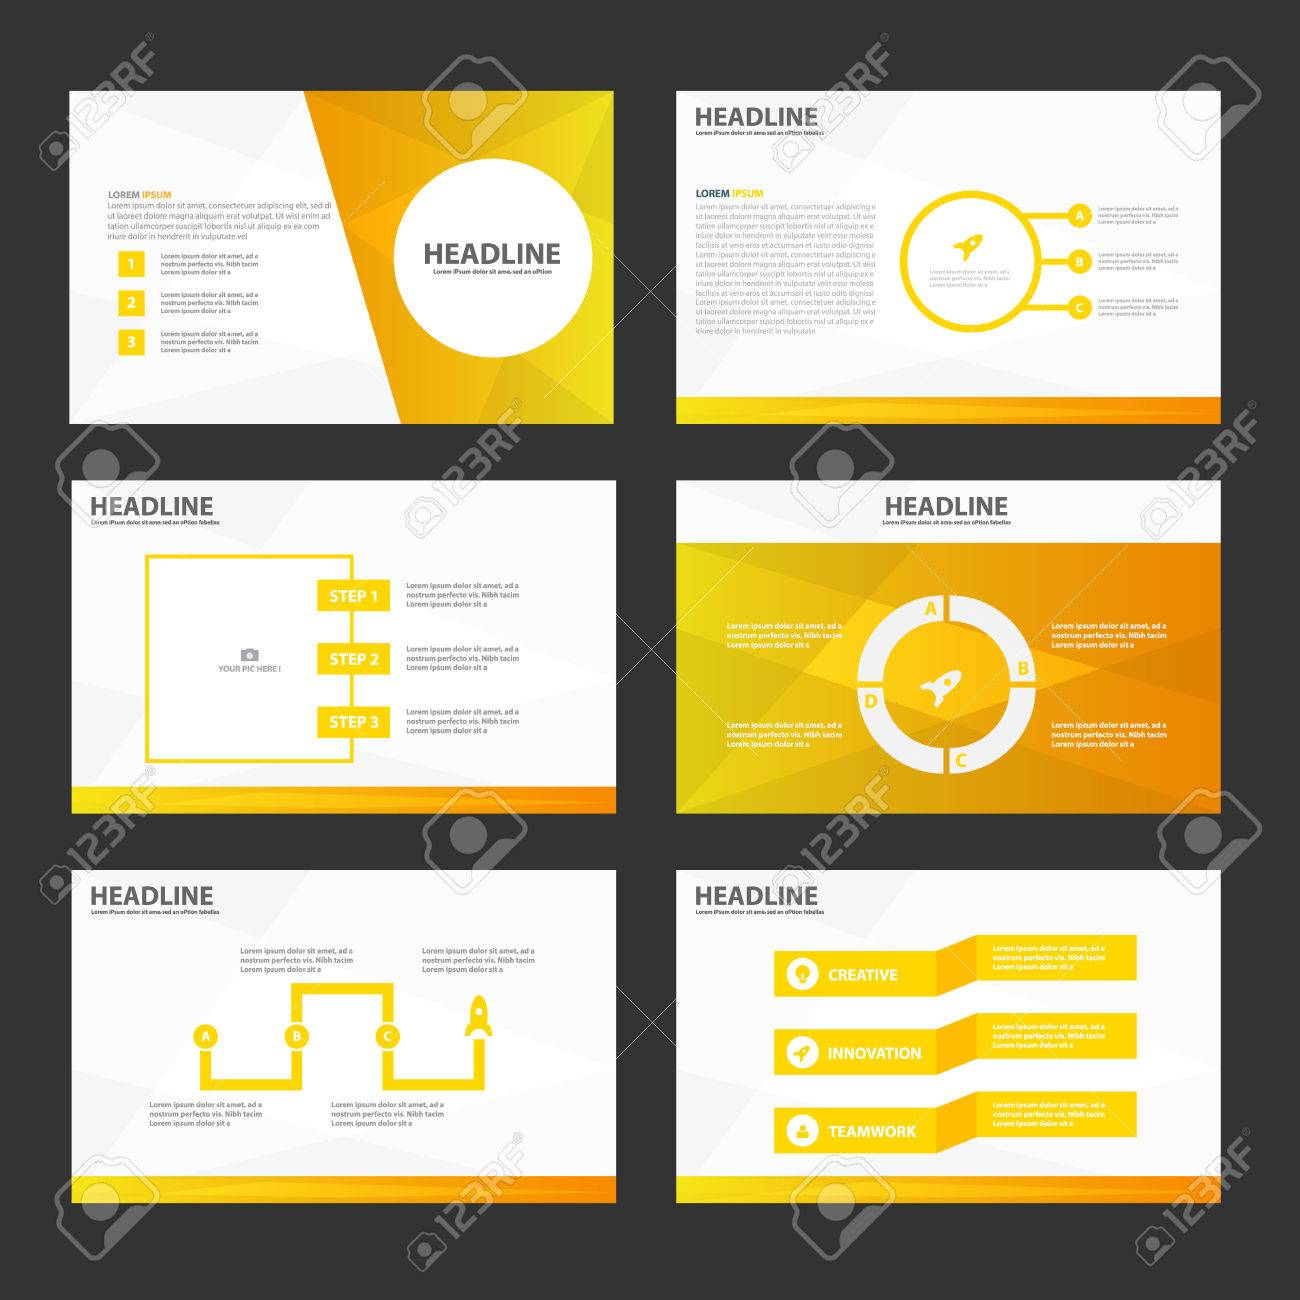 powerpoint flyer templates image collections - templates example, Modern powerpoint